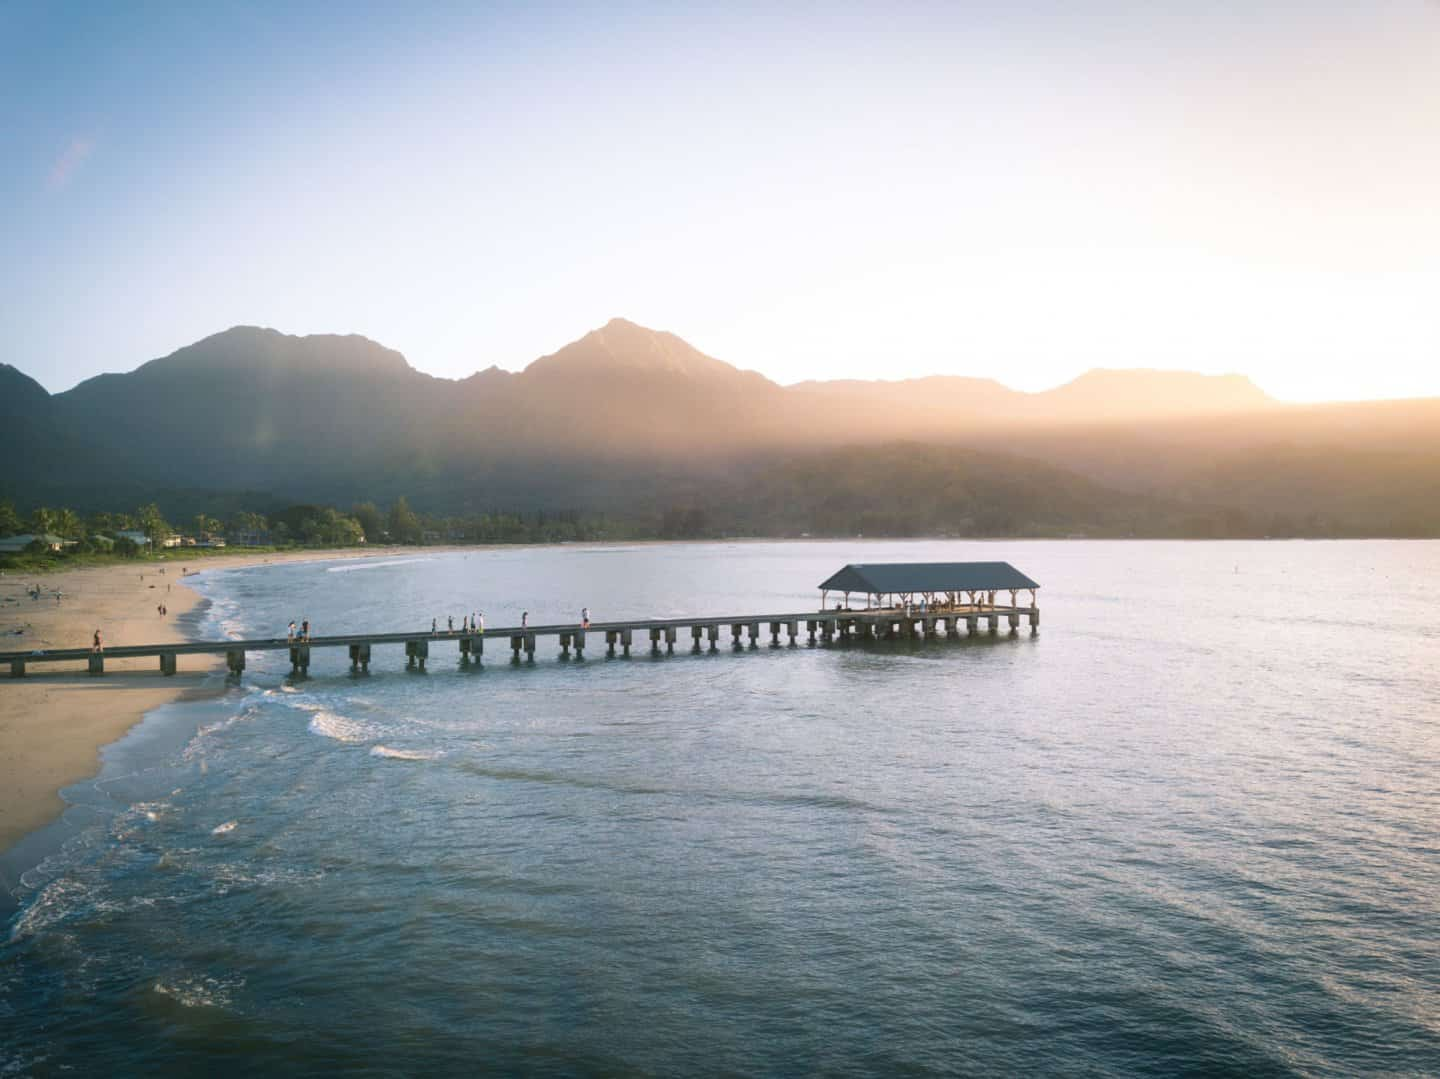 The Hanalei Pier dressed in the colors of a Kauai sunset.